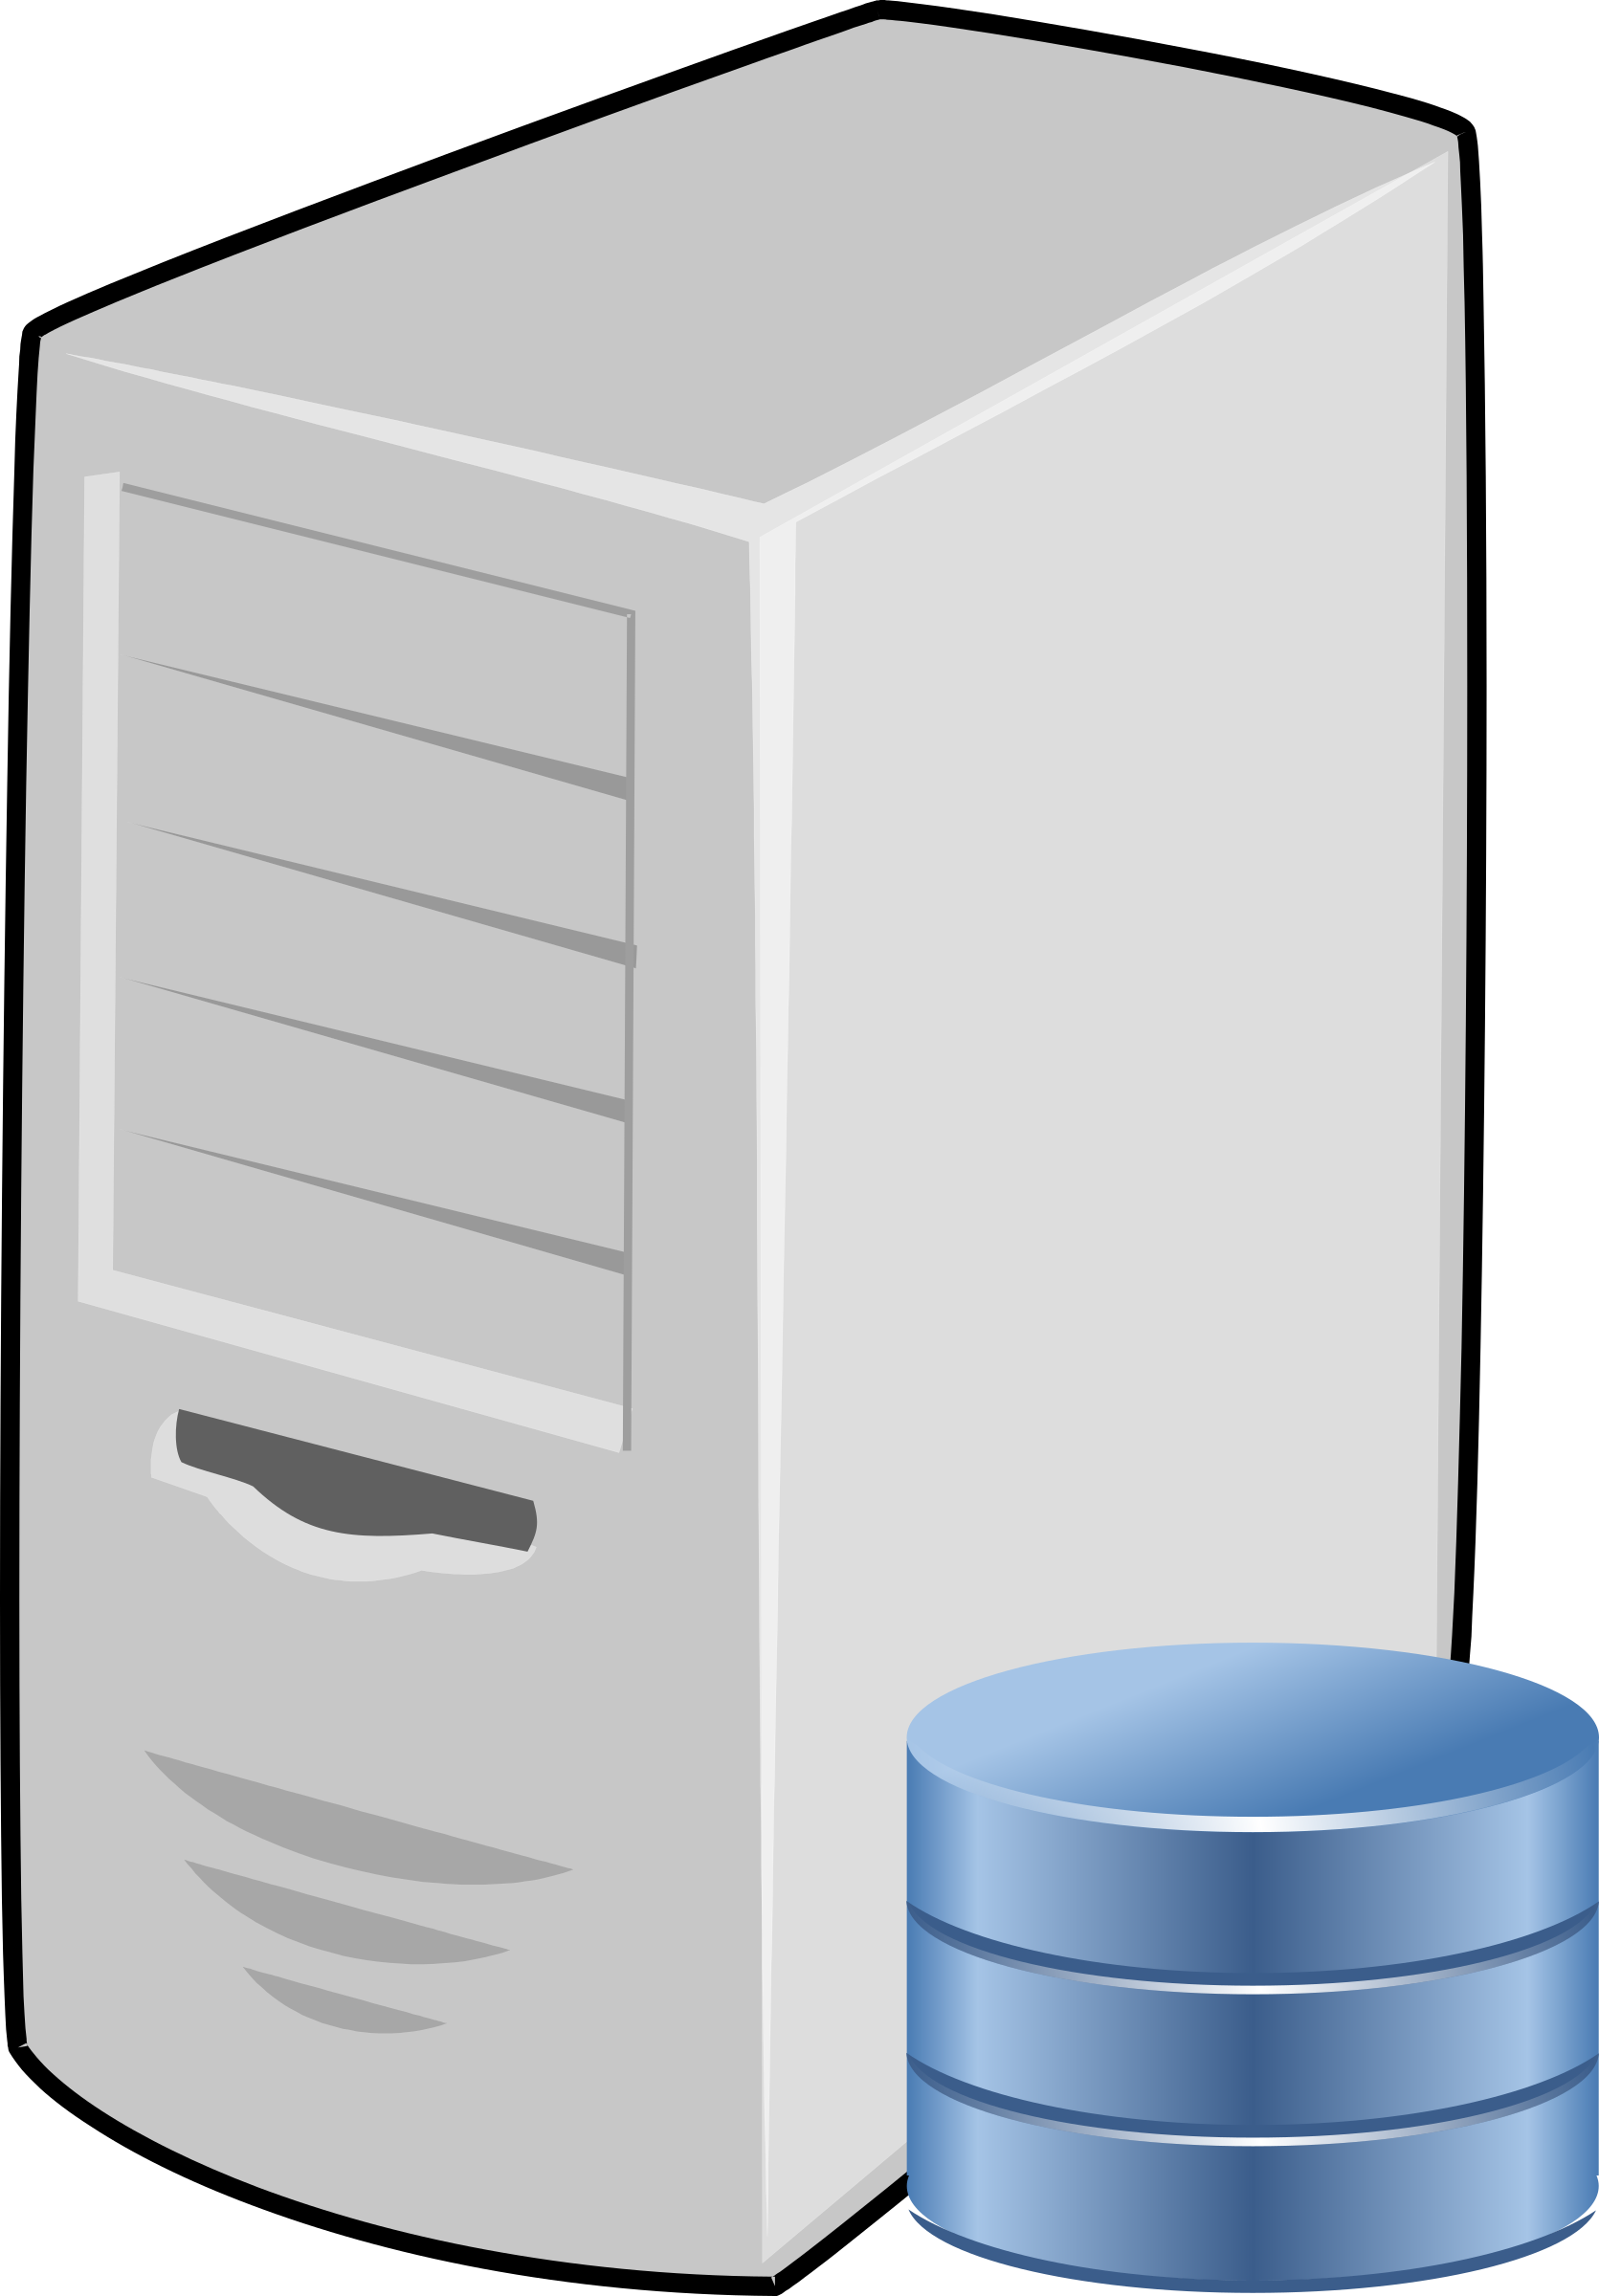 Database Server by ujmoser